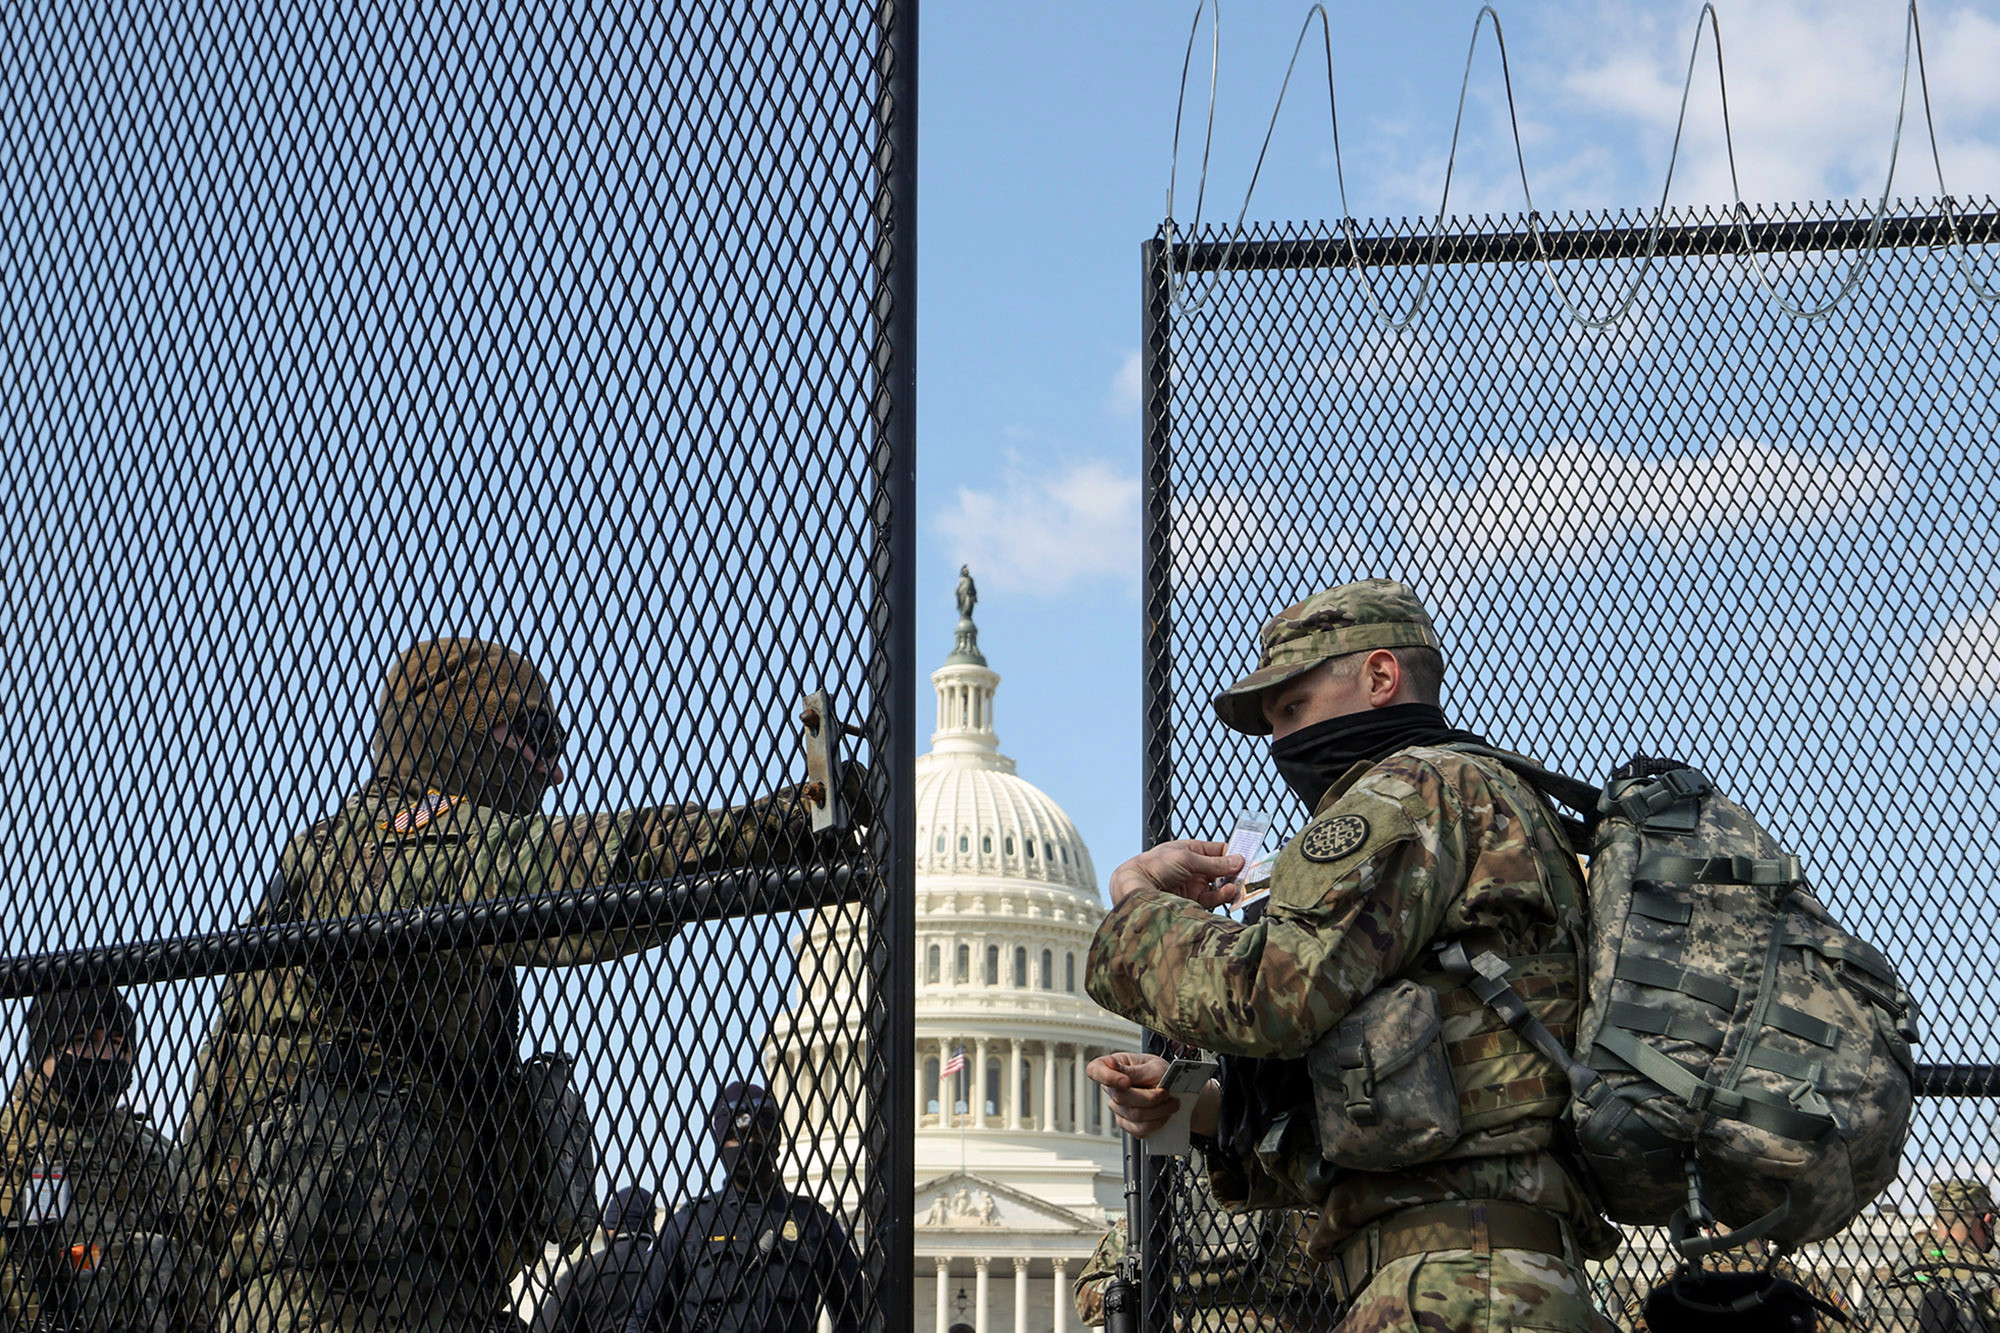 National Guard soldiers patrol the grounds of the U.S. Capitol after police warned that a militia group might try to attack the Capitol complex in Washington, DC.